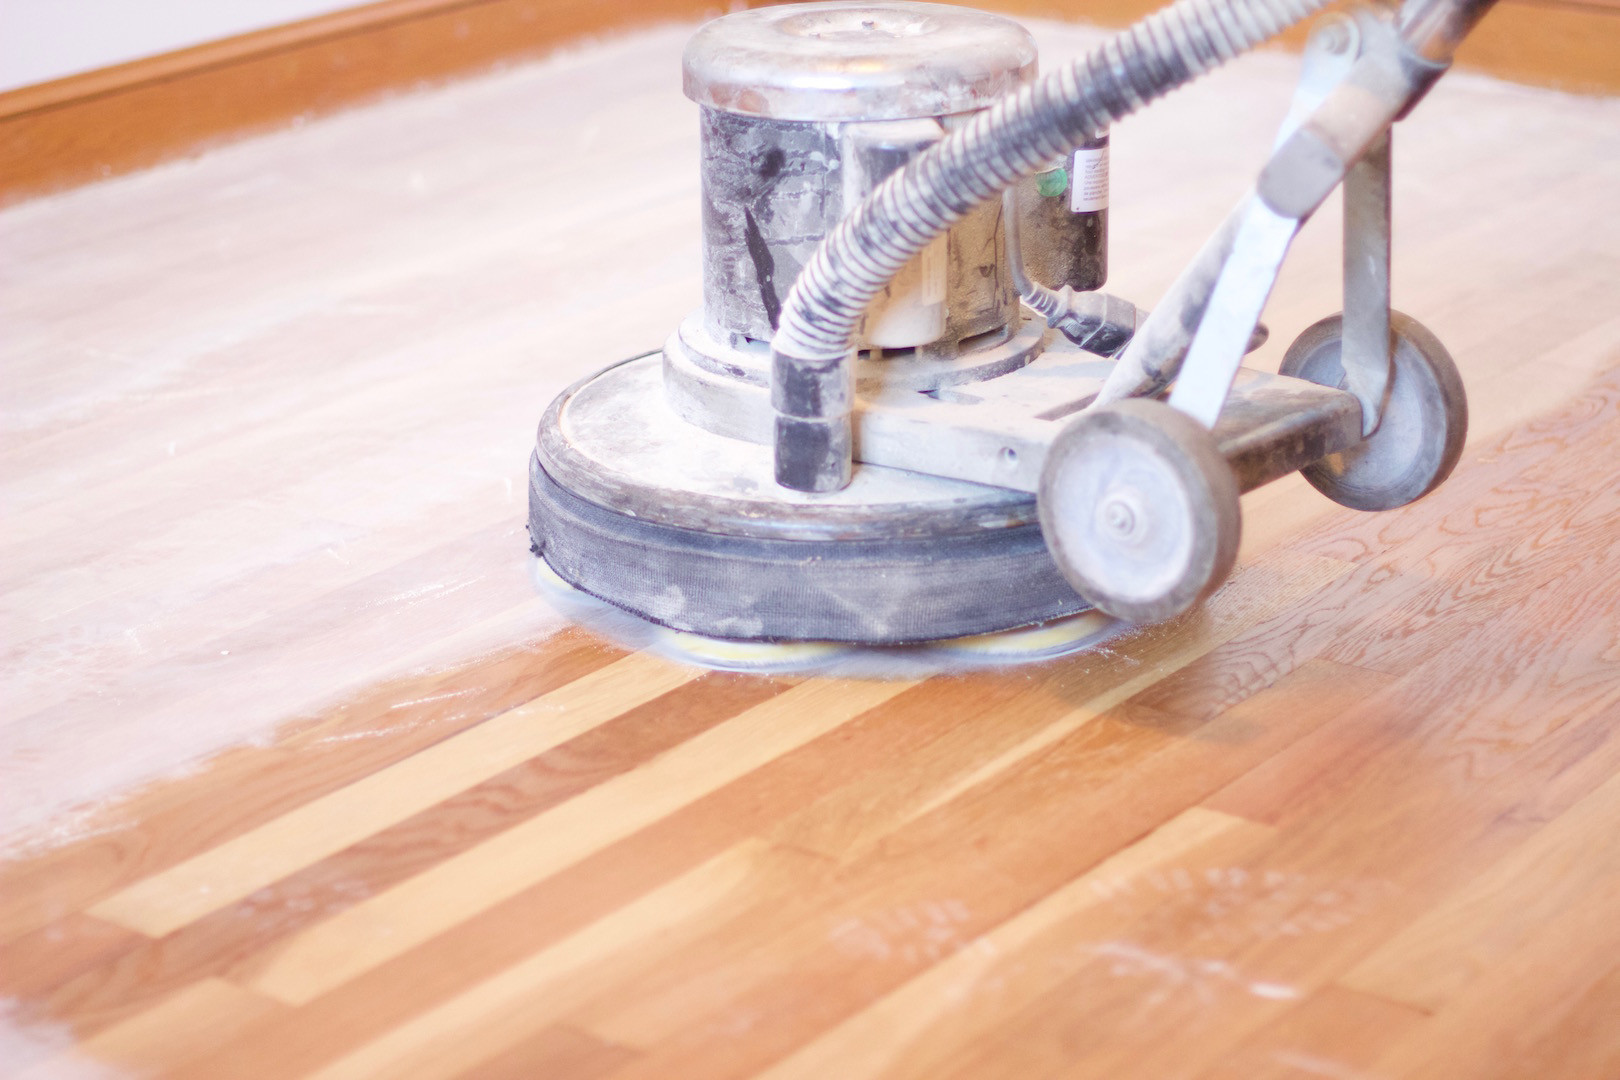 Cost to Sand and Refinish Hardwood Floors Of Cleaning Machine Hardwood Buffer Polisher Wood Floor Ideas Pertaining to Full Size Of Cleaning Machine Gandswoodfloors Hardwood Floor Buffer How to Lynnbostonwellesley Polisher Mg 2602